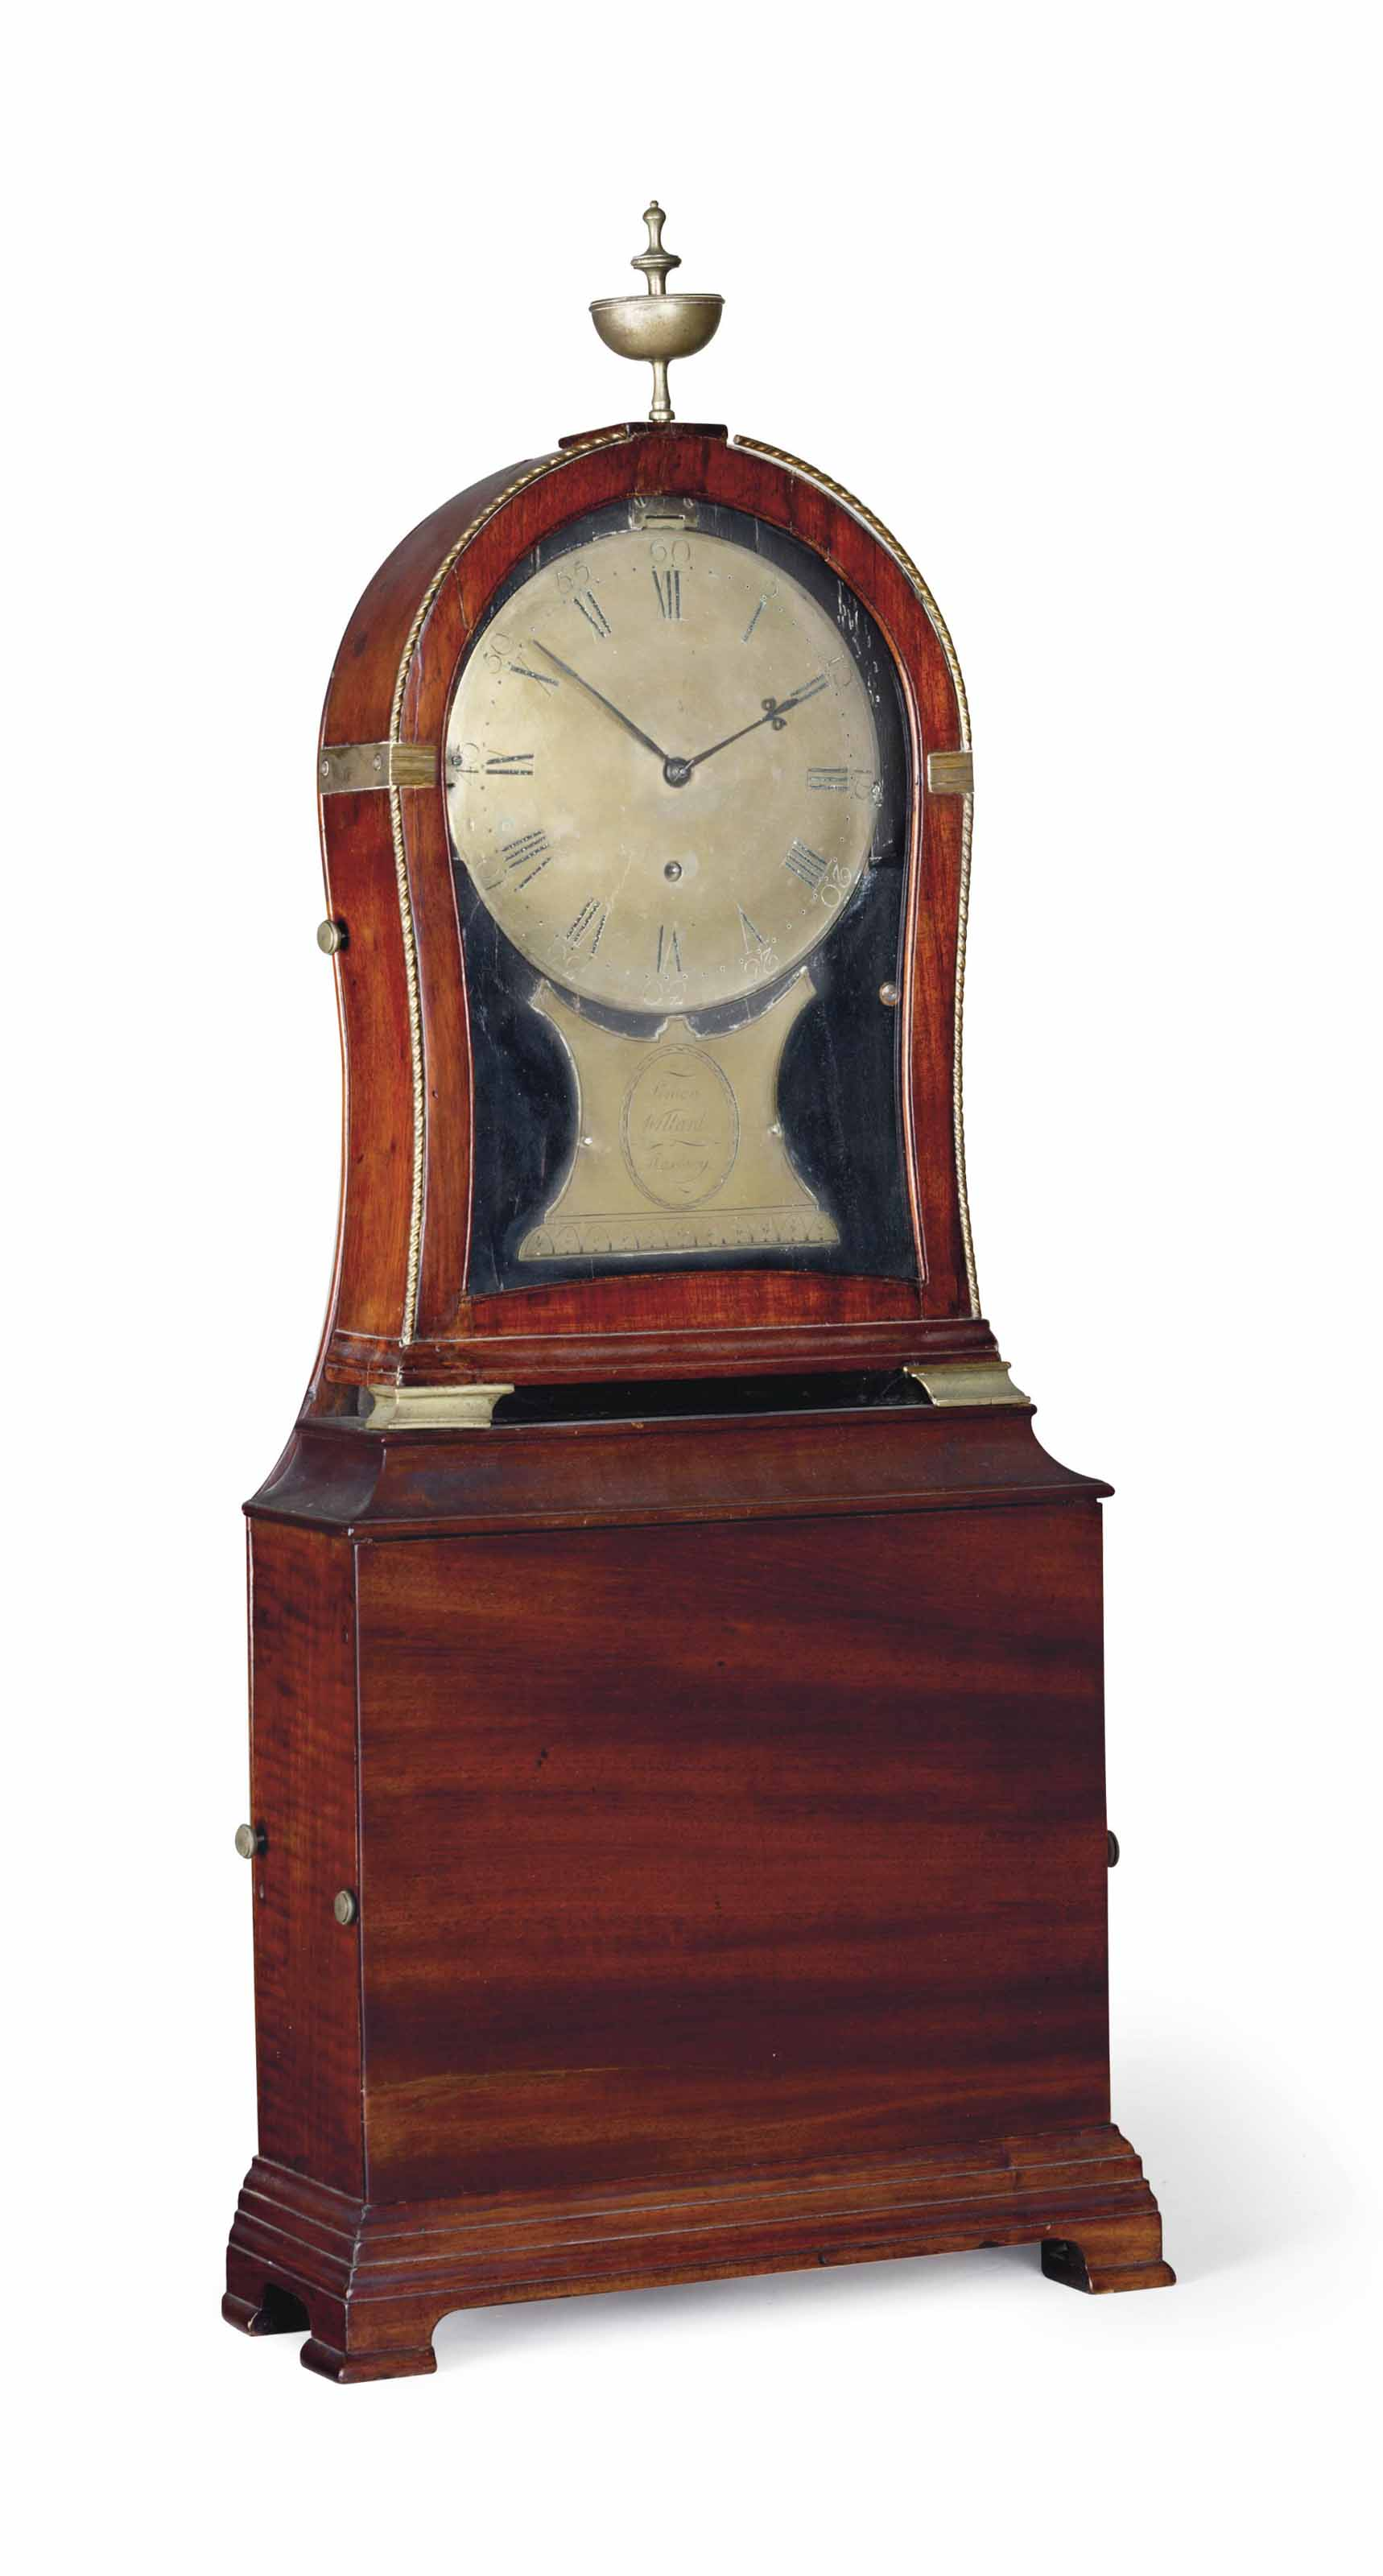 A CHIPPENDALE BRASS-MOUNTED MAHOGANY SHELF TIME PIECE CLOCK